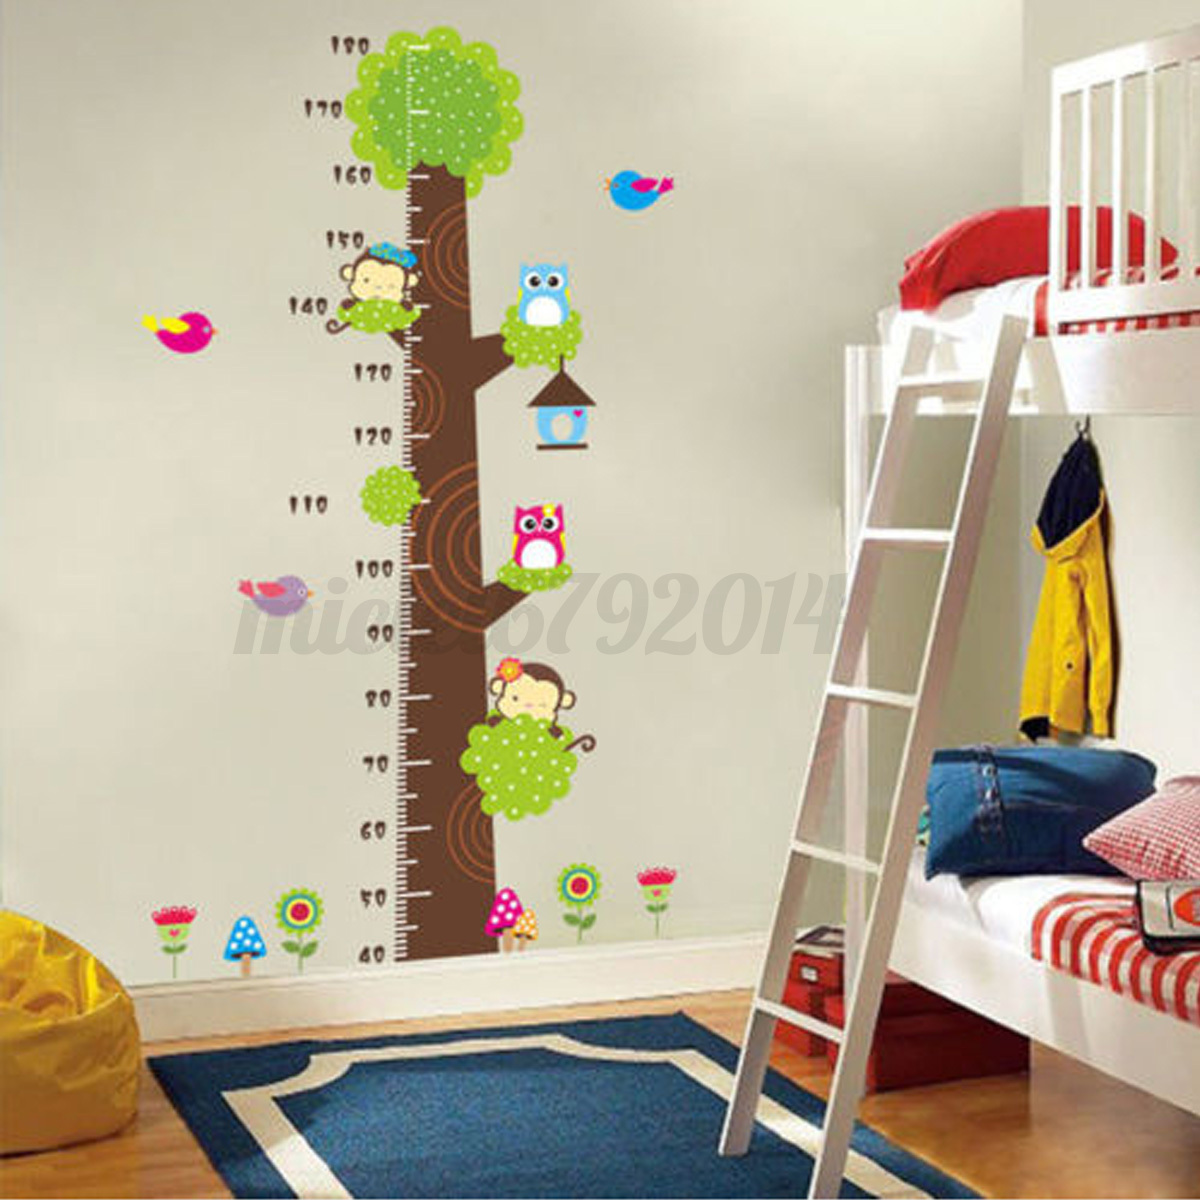 Children height growth chart measure wall sticker kids for Growth chart for kids room